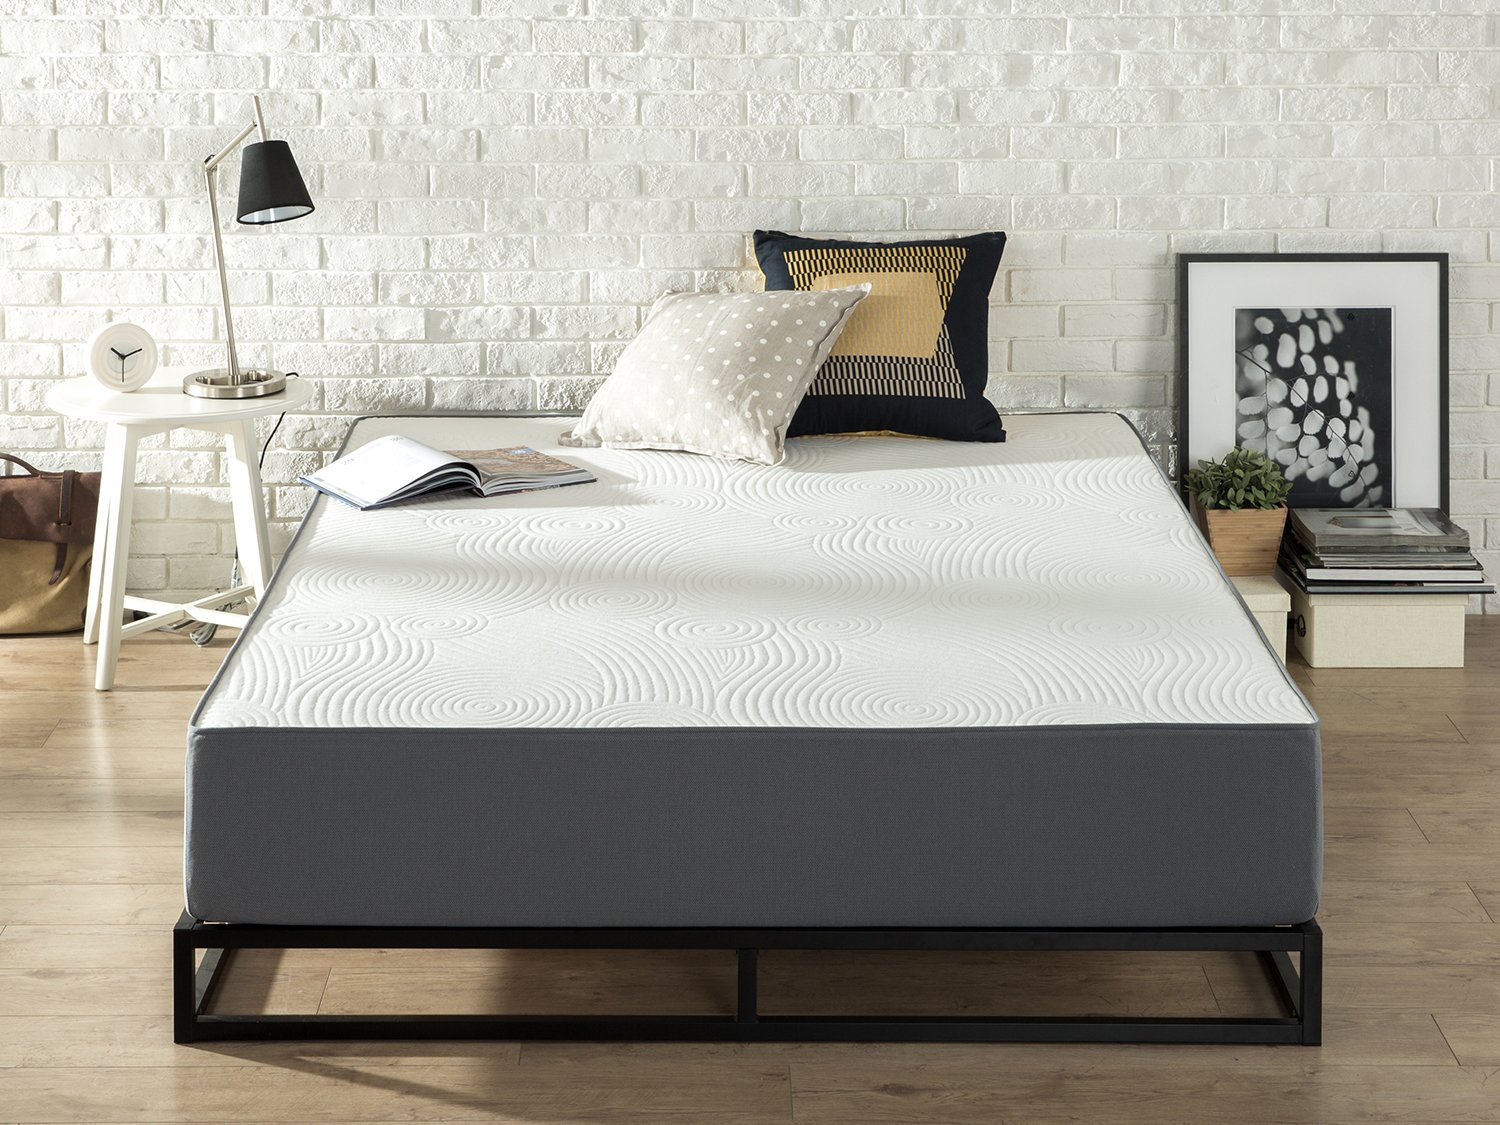 Zinus Responsive Memory Foam 10 Inch   Firm   Universal Comfort Support  Mattress  Full. Zinus best memory foam mattress   Ease Bedding with Style